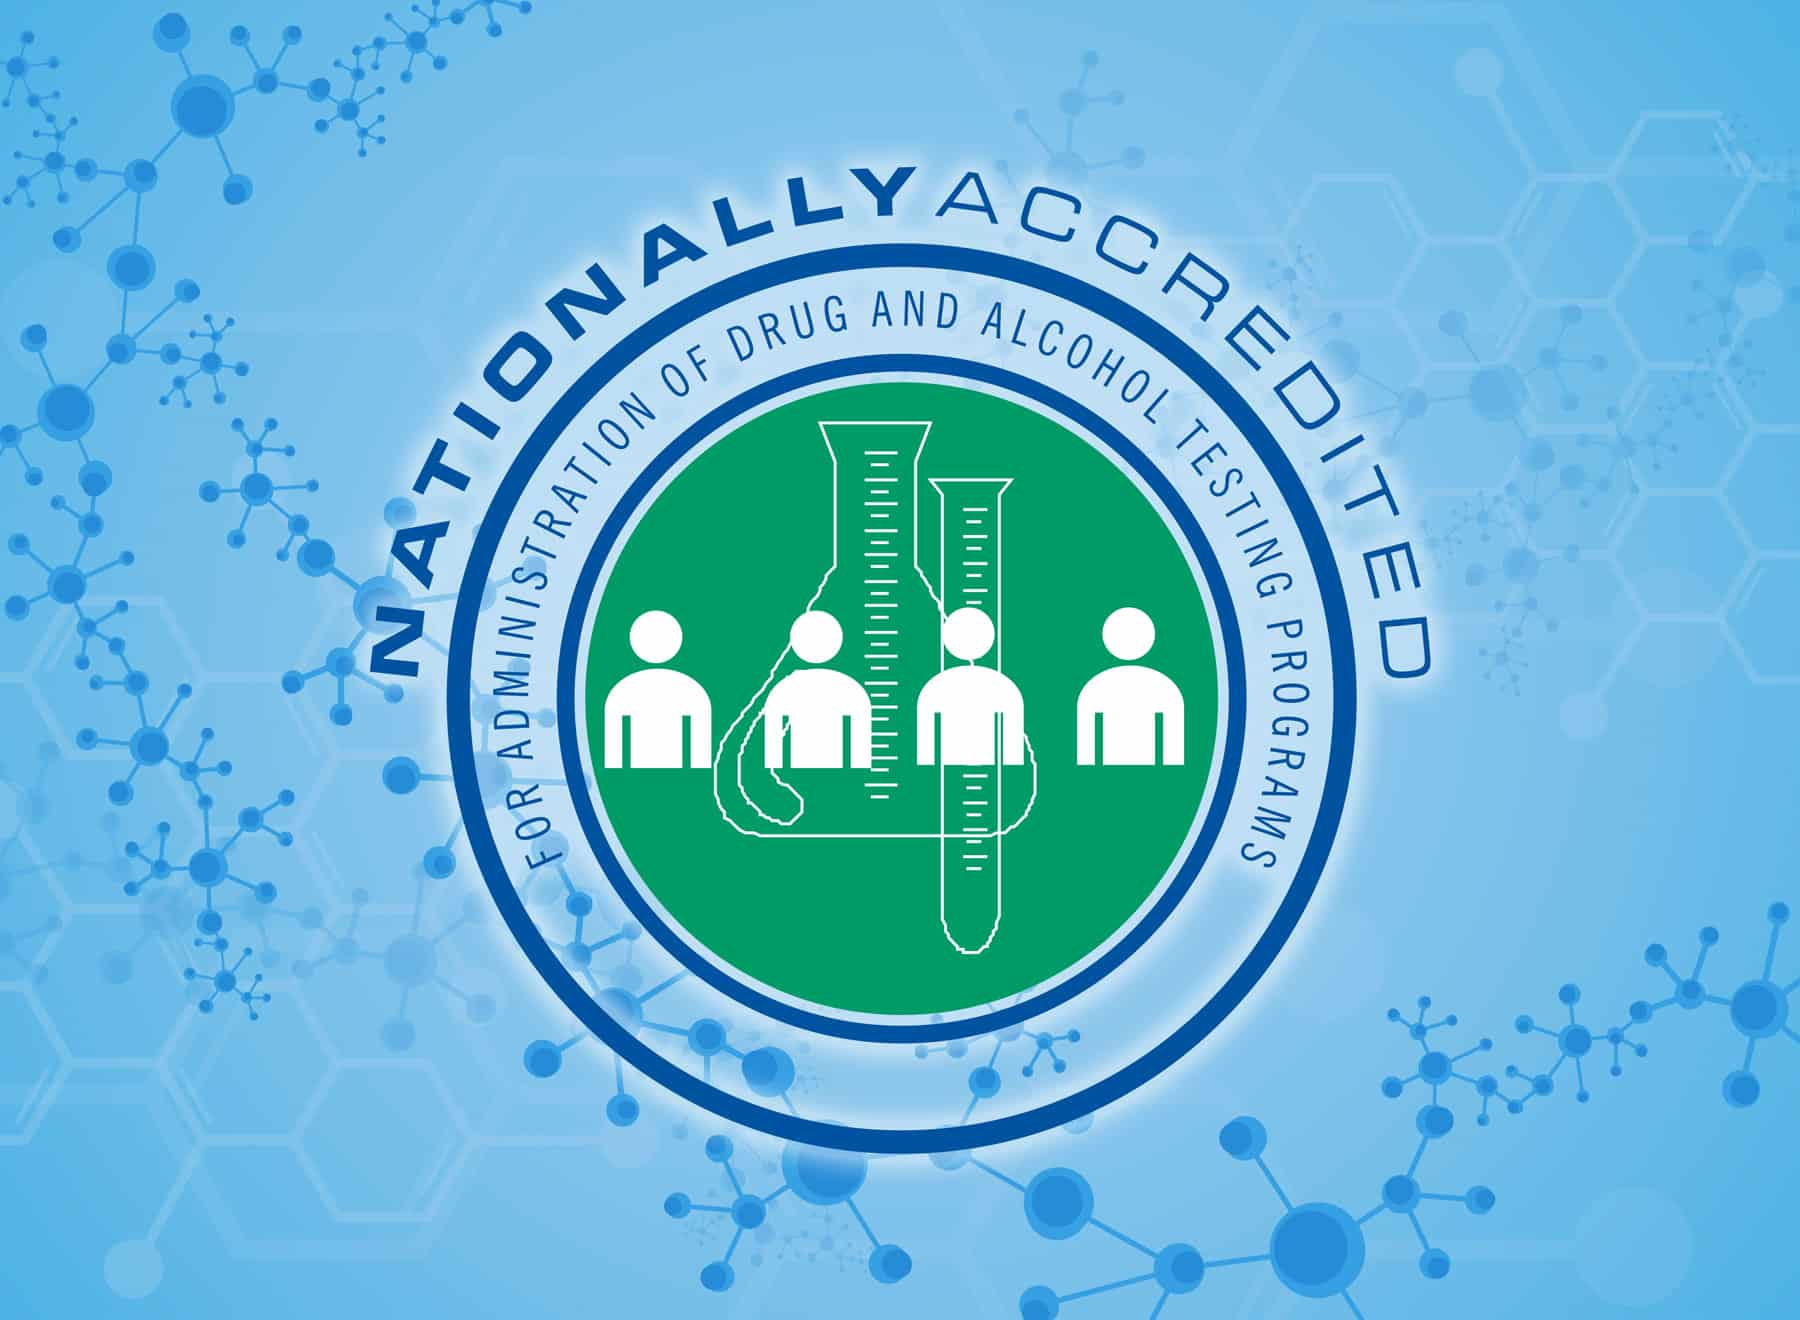 Wisconsin Drug Testing Consortium Awarded Nationally Accredited For Administration of Drug and Alcohol Testing Programs Status